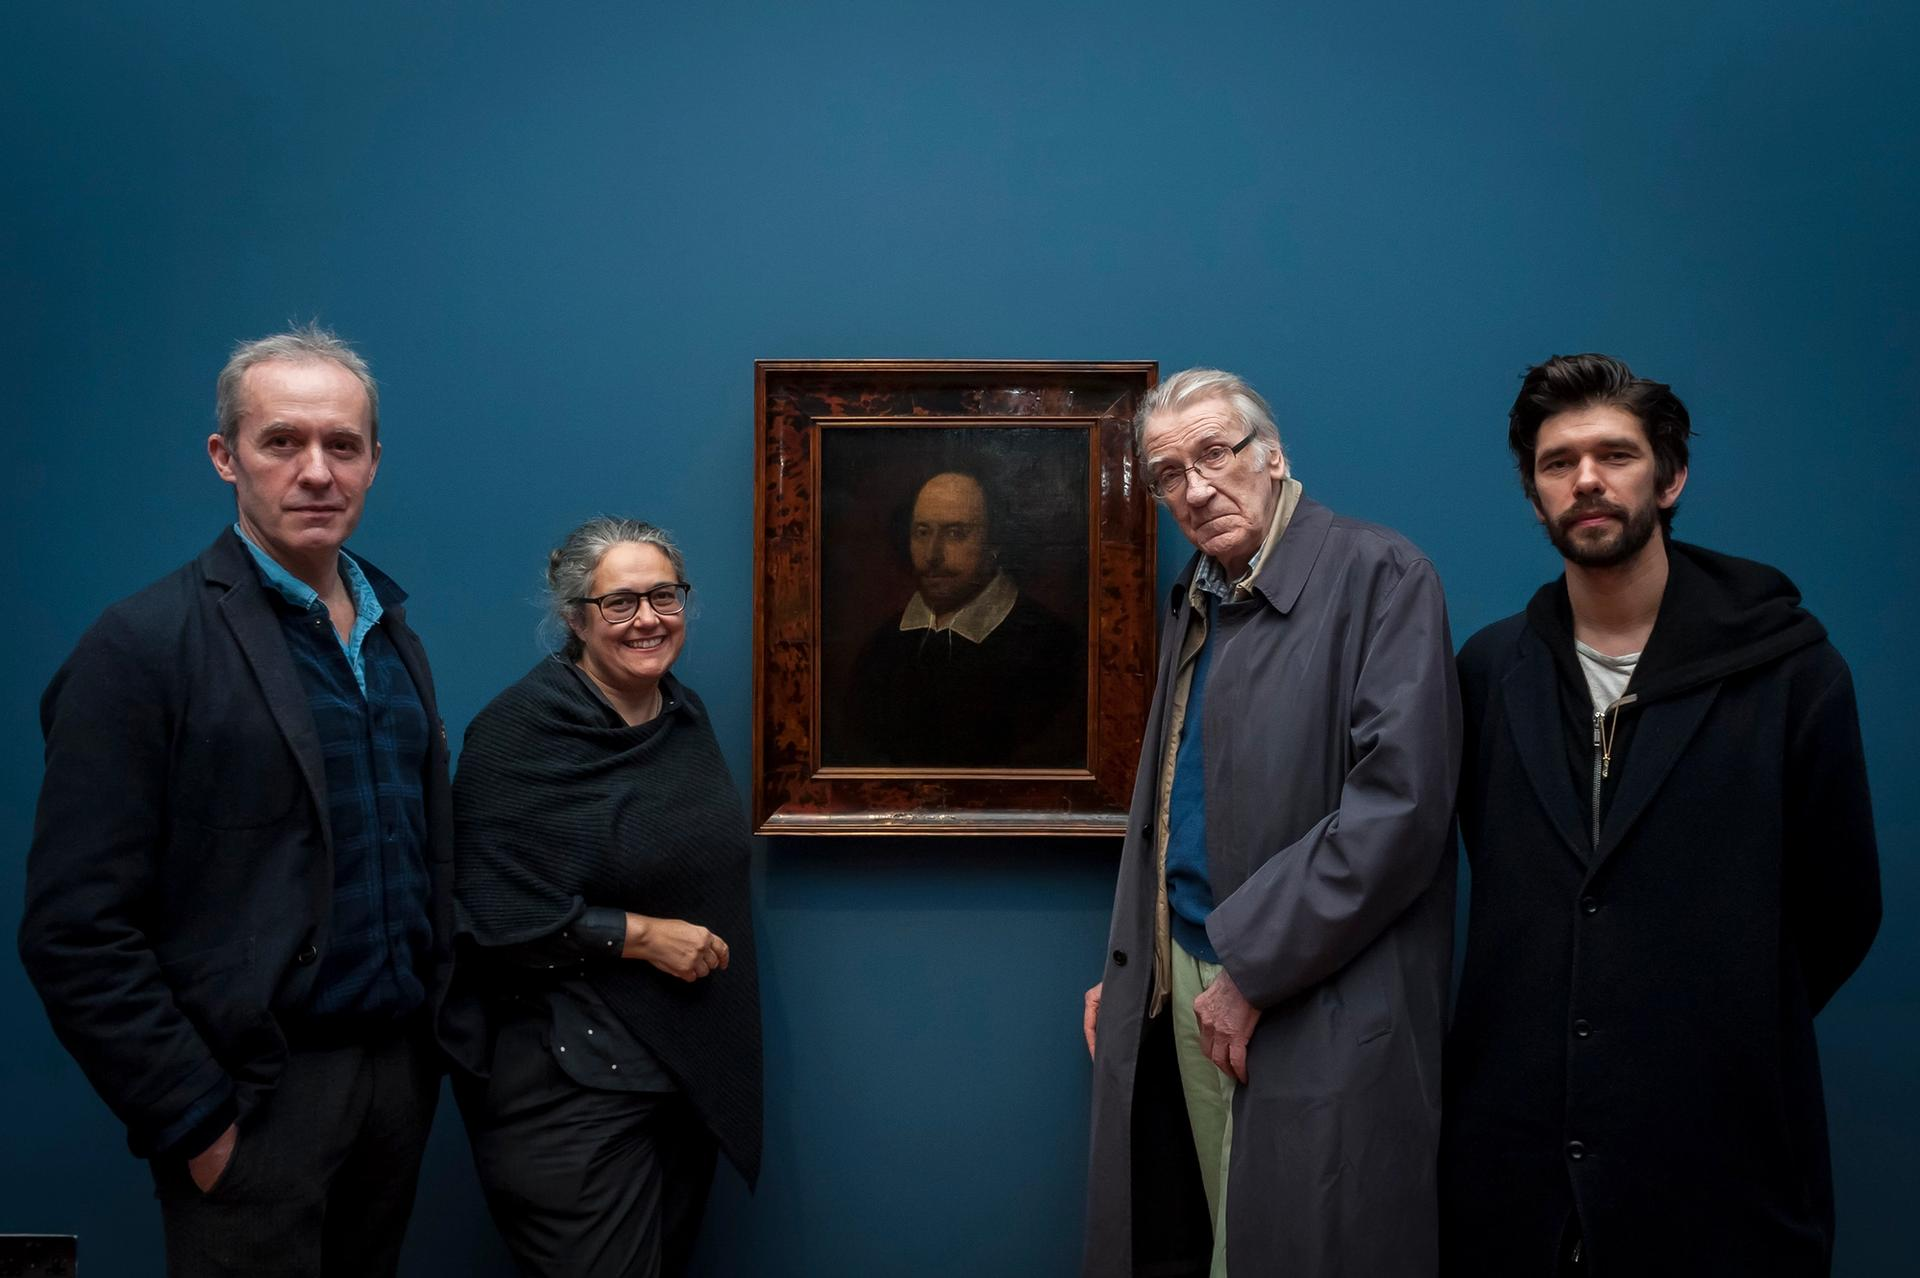 Stephen Dillane, Tacita Dean, David Warner and Ben Whishaw pose by a portrait of Shakespeare during a viewing of  Dean's new film portrait of the actors at the National Portrait Gallery on 13 March Jorge Herrera